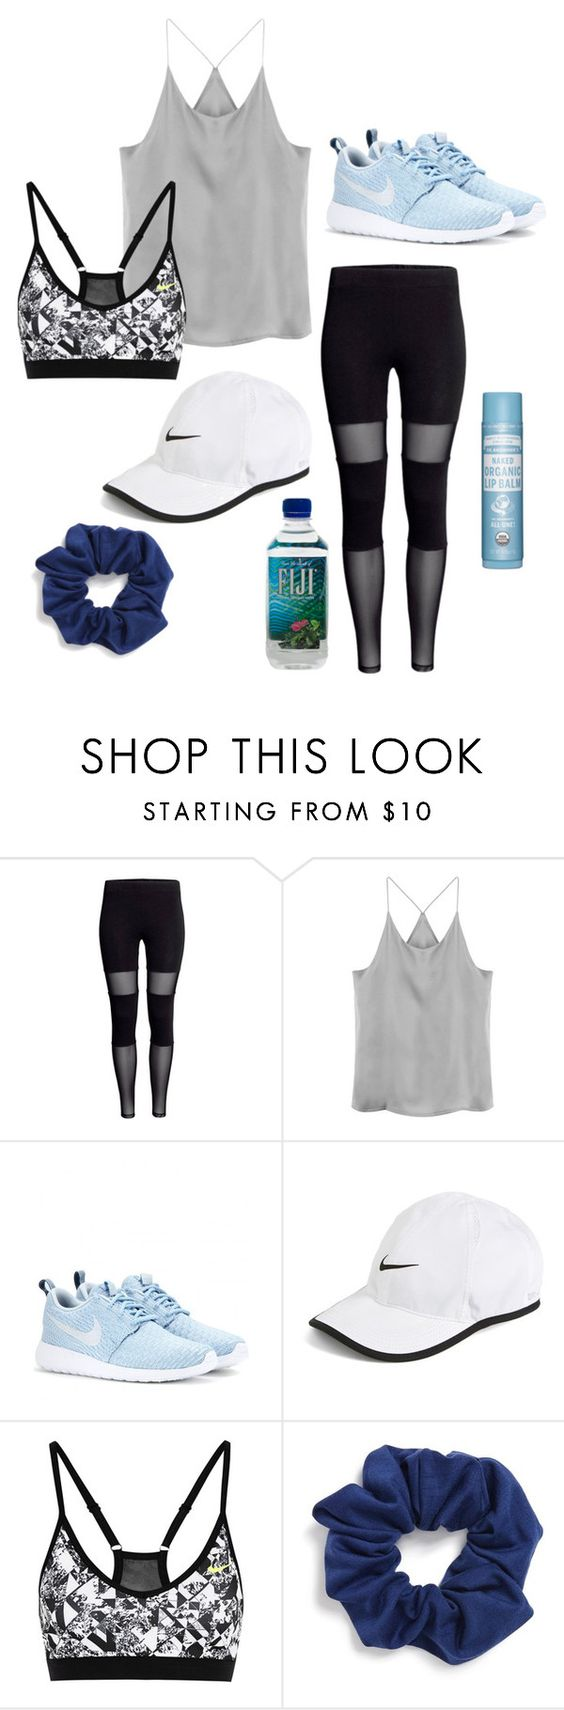 """""""workout outfit"""" by faithbrownn ❤ liked on Polyvore featuring NIKE and Natasha Couture"""